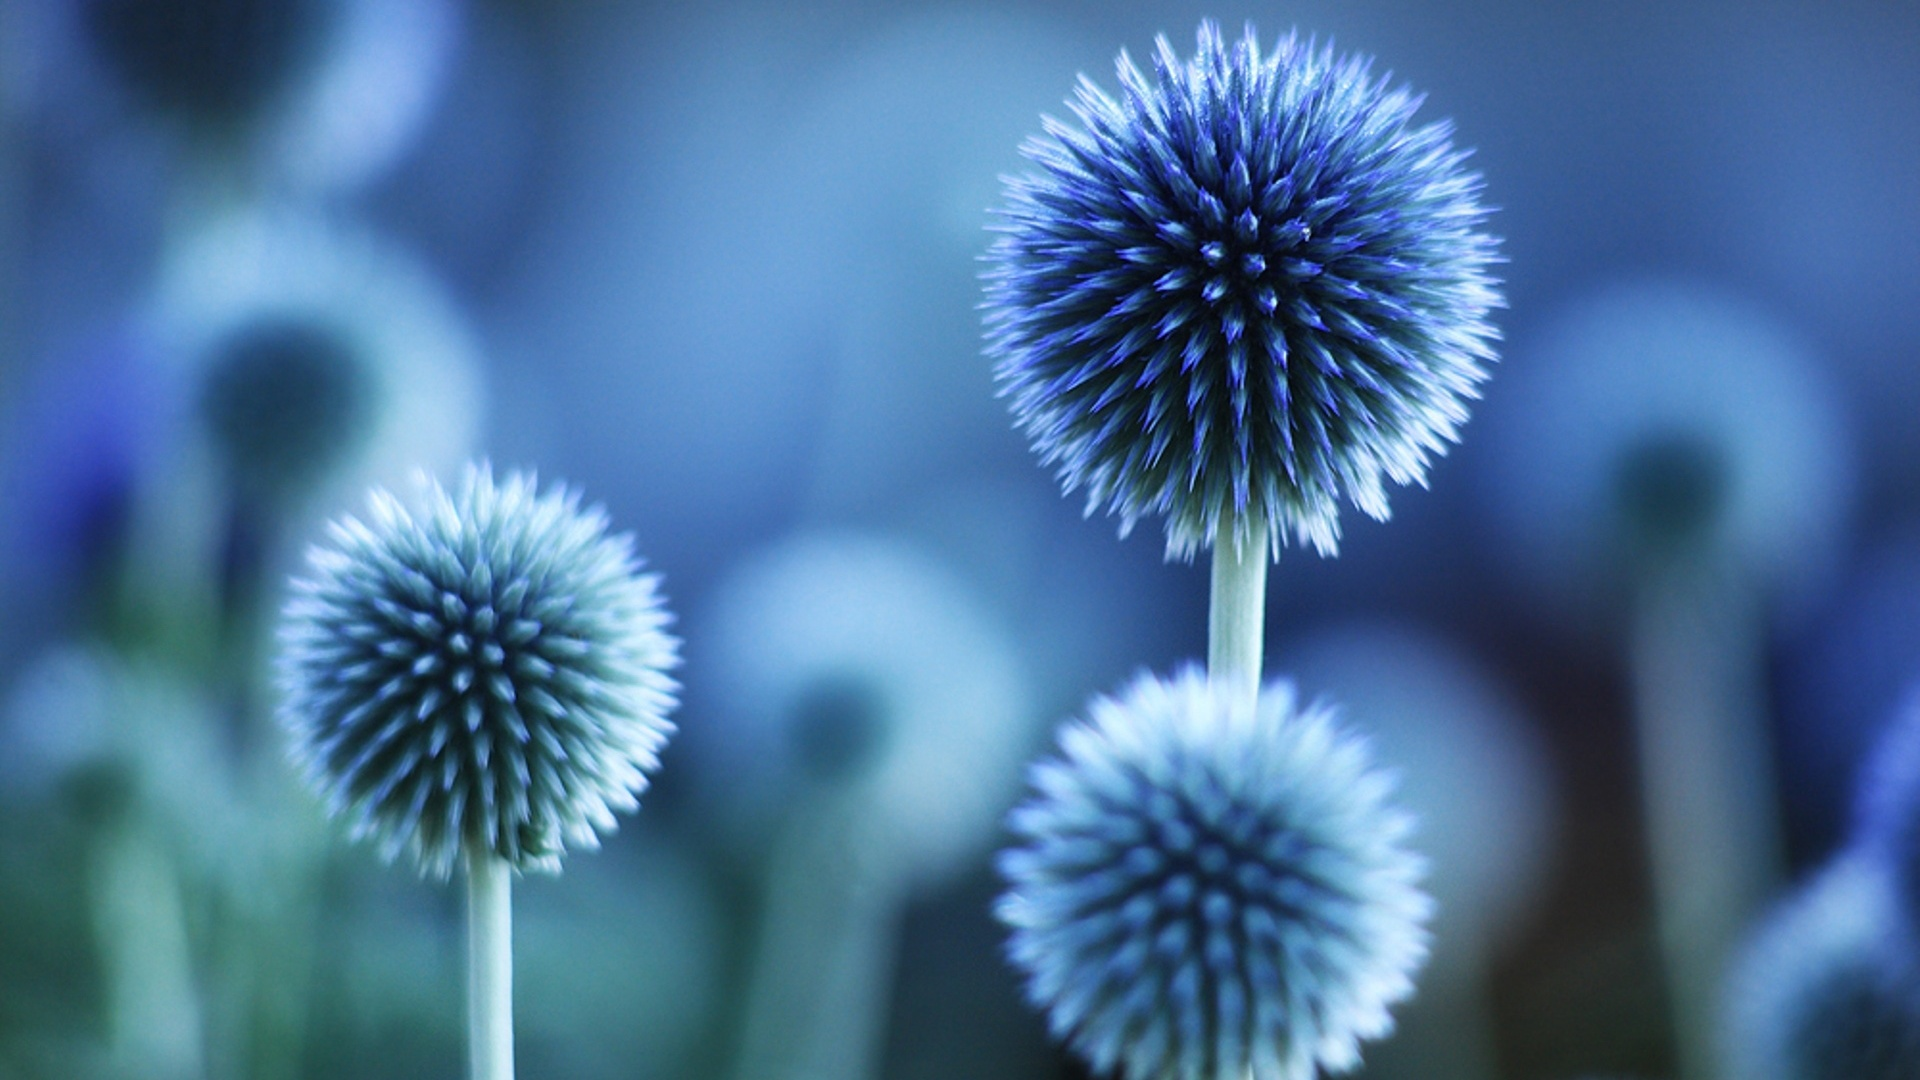 Flower plant blue mood wallpaper - 1920x1080